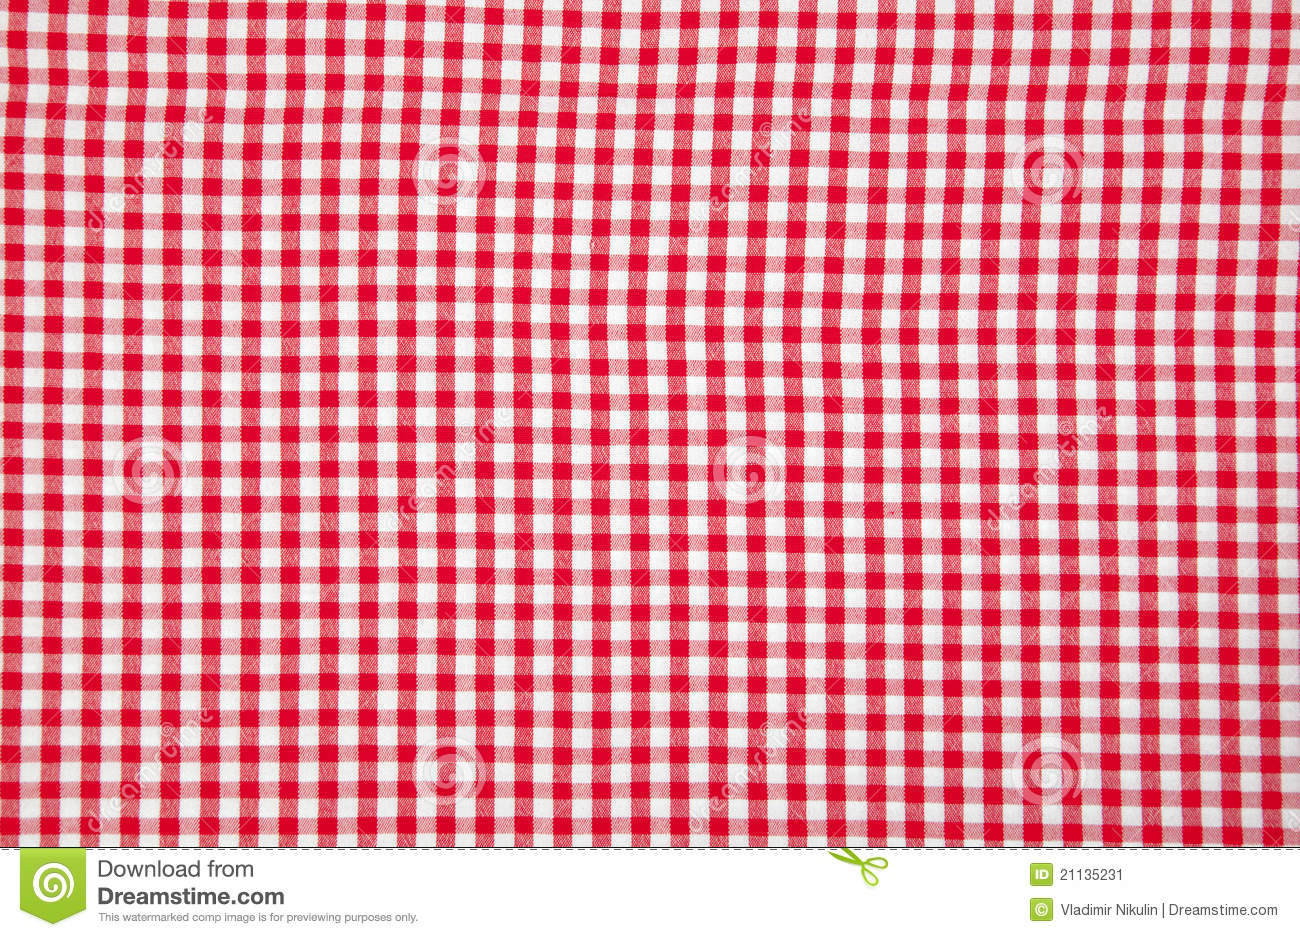 Real White And Red Tablecloth Stock Image - Image: 21135231